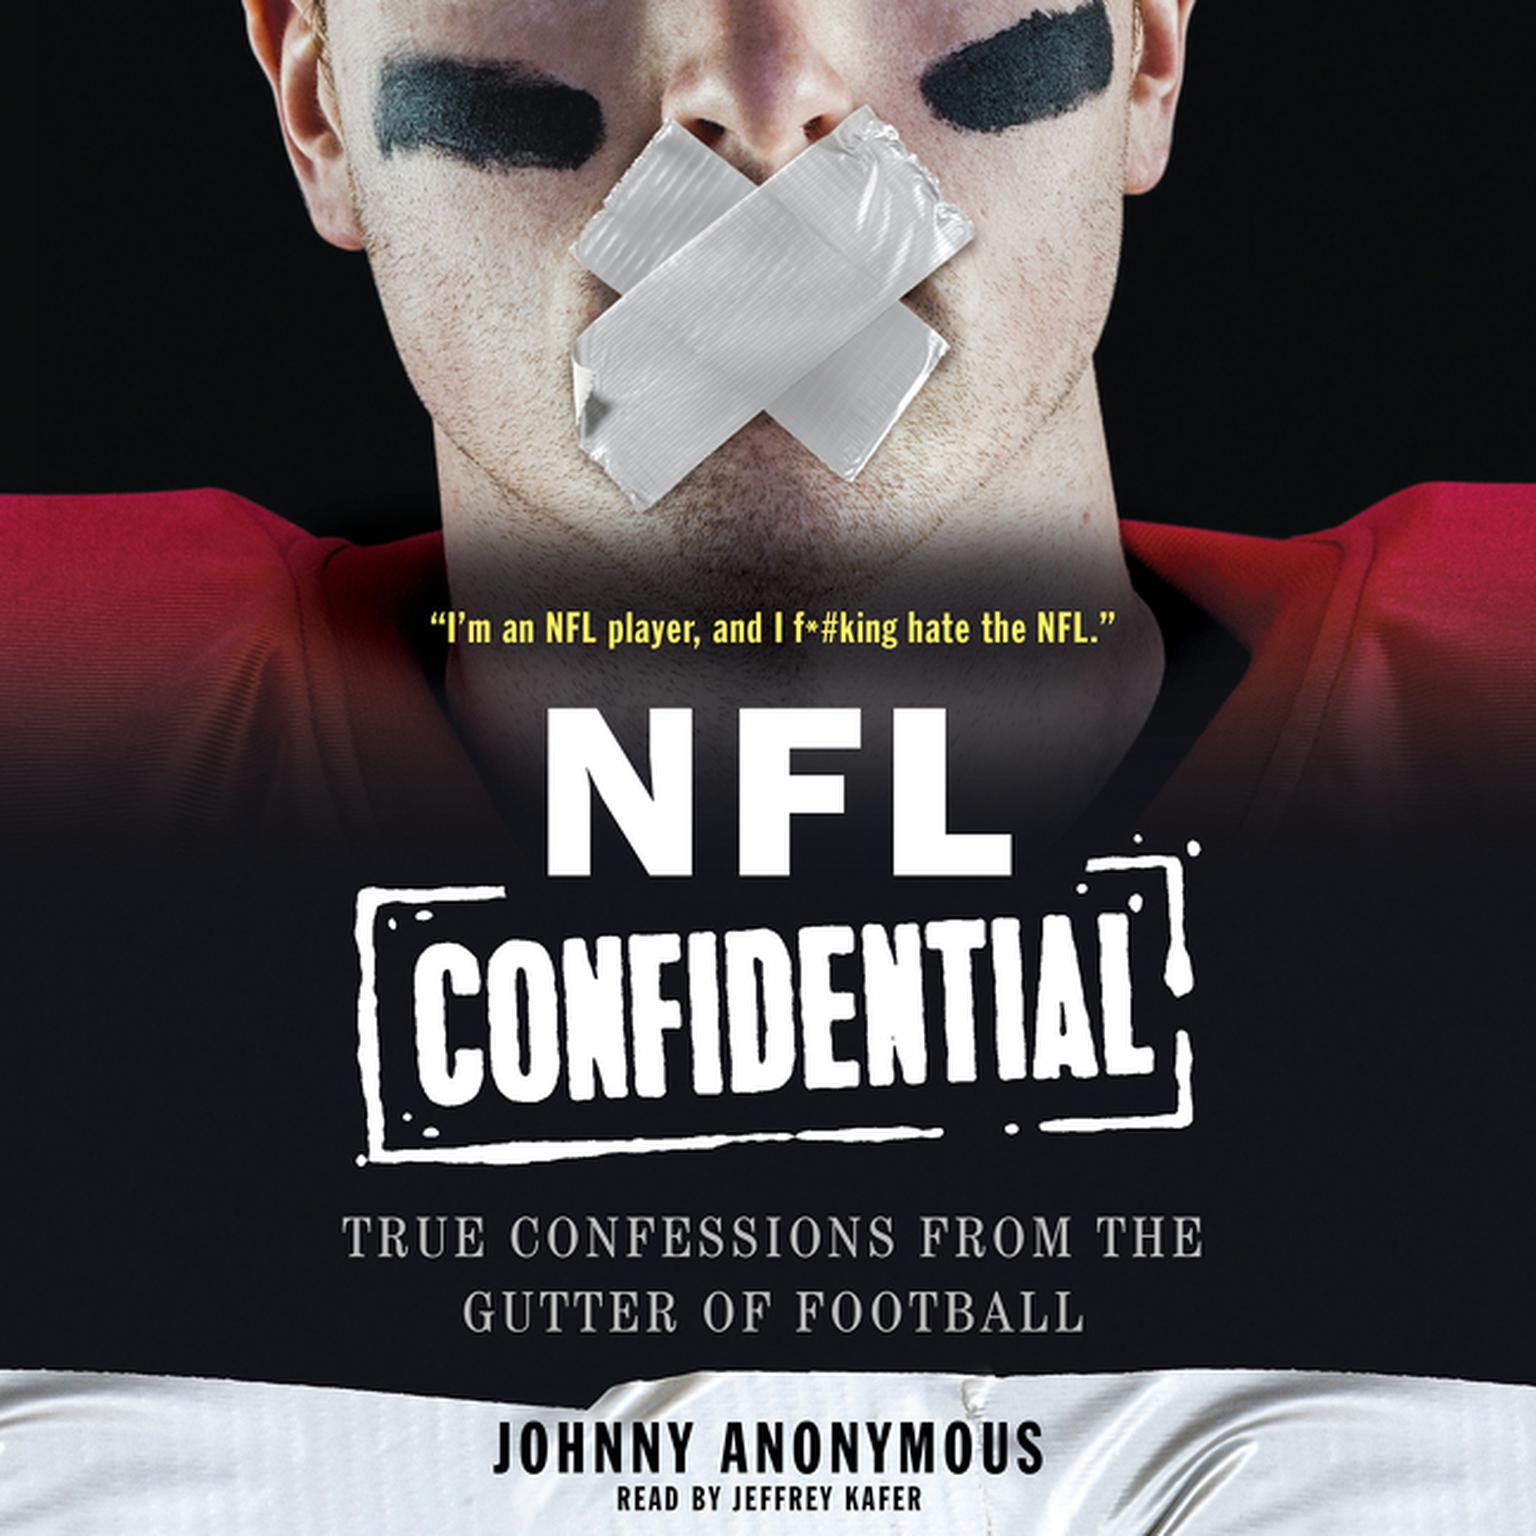 Printable NFL Confidential: True Confessions from the Gutter of Football Audiobook Cover Art